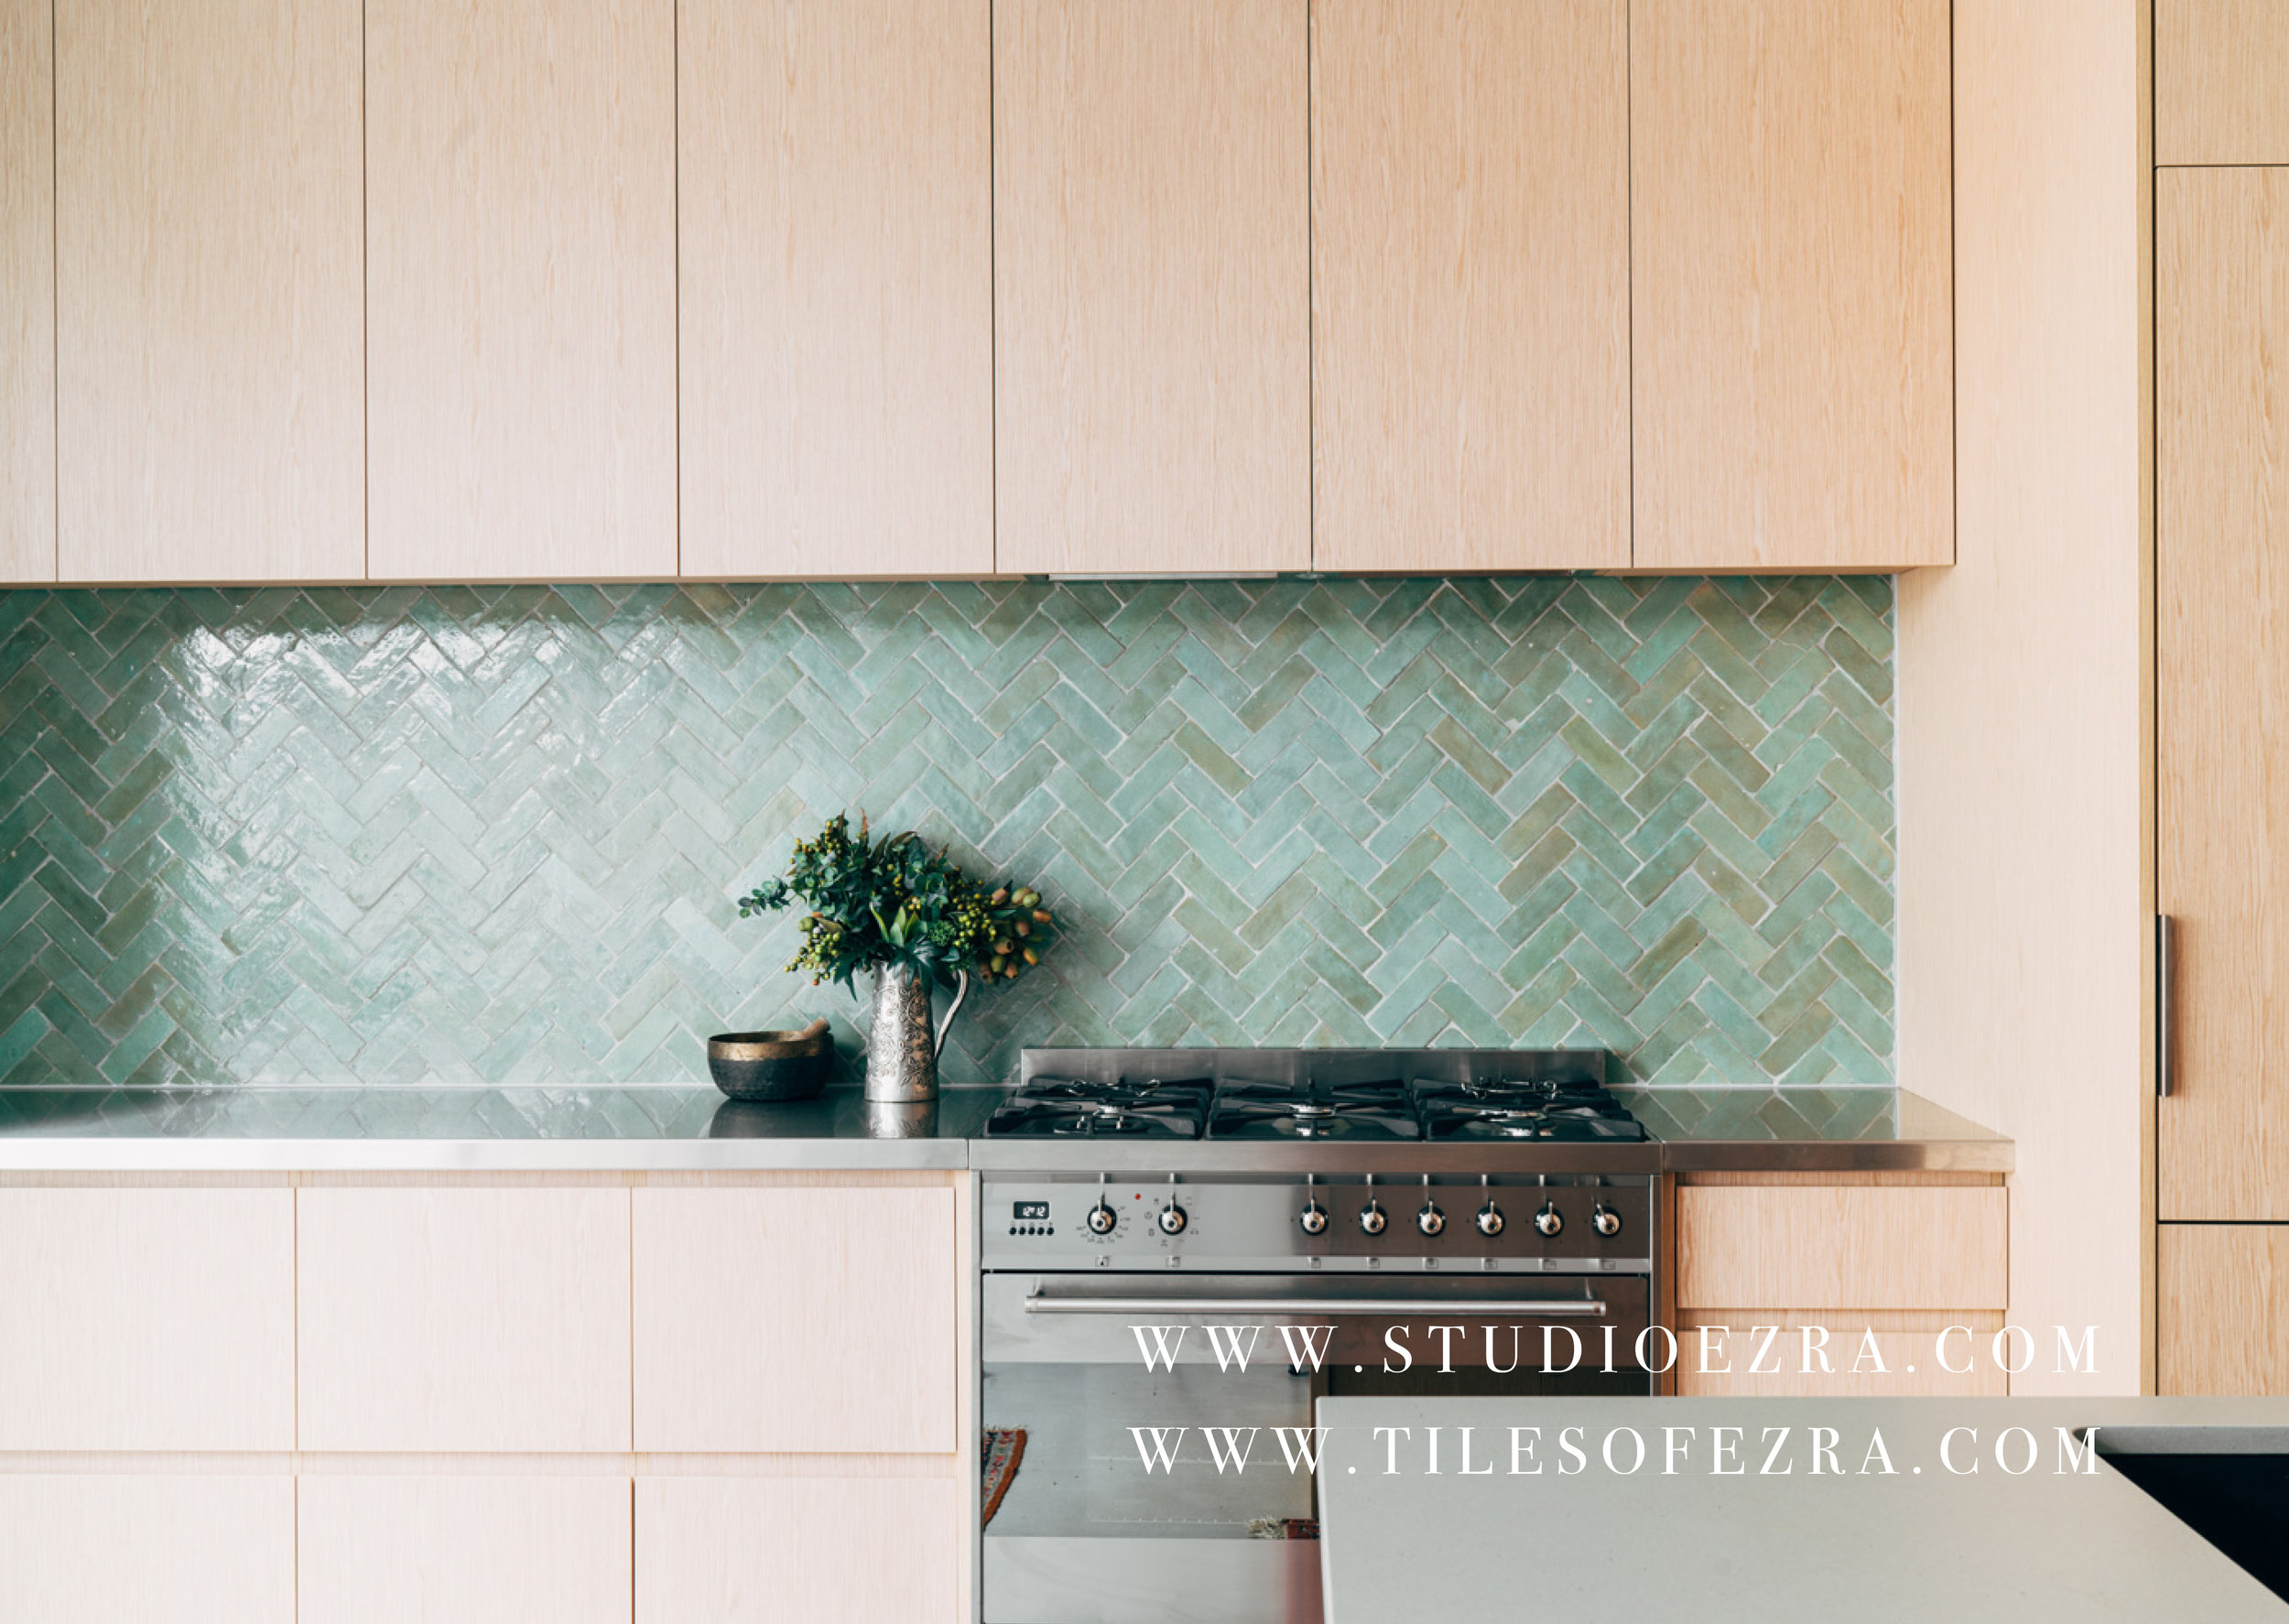 FL006 Moroccan Bejmat Splashback kitchen green tiles .jpg